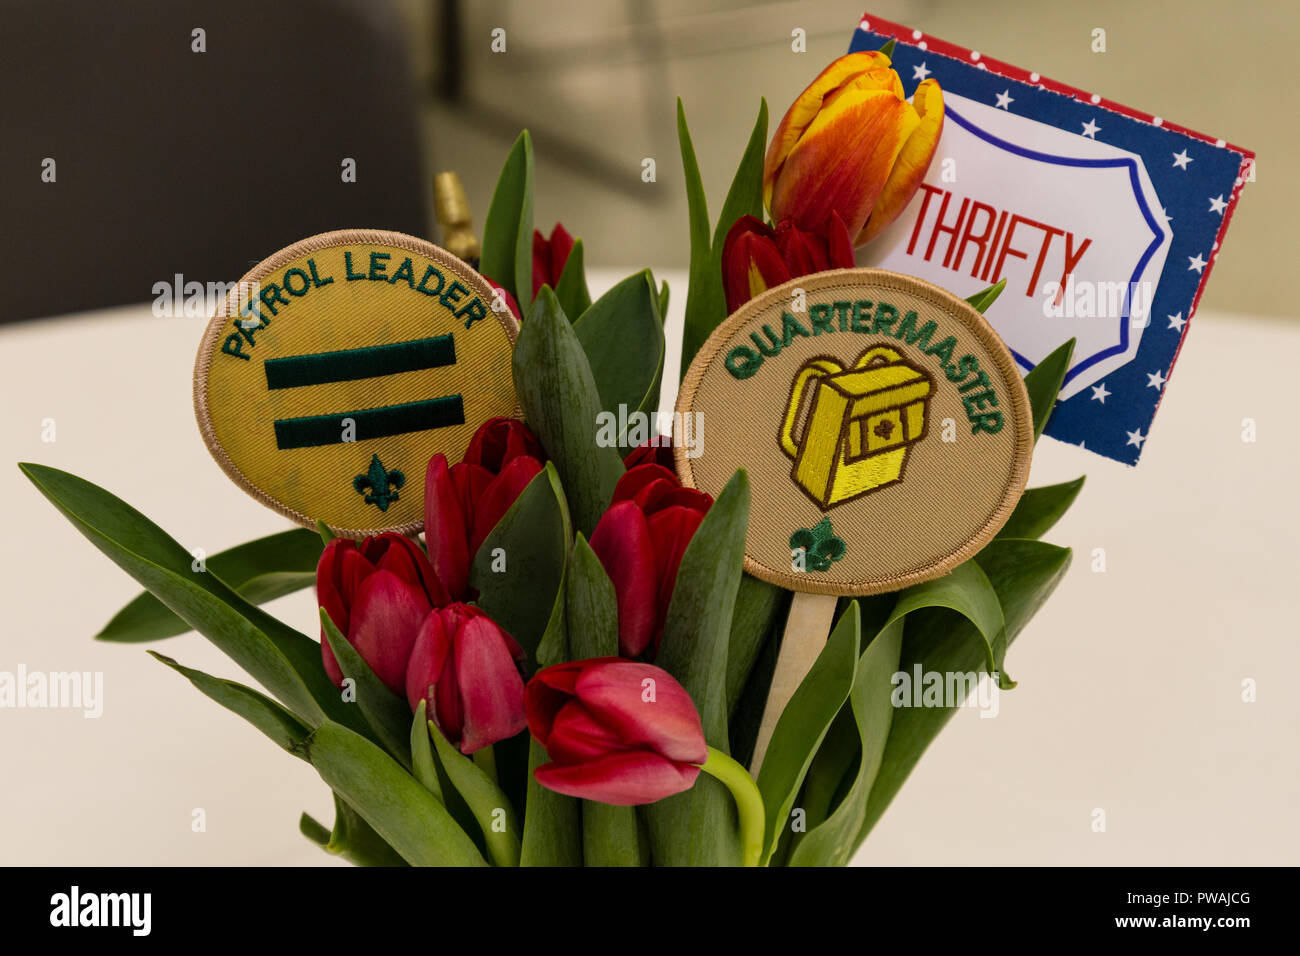 A Scout Patrol Leader and Quartermaster is Thrifty sign and patches in flowers - Stock Image